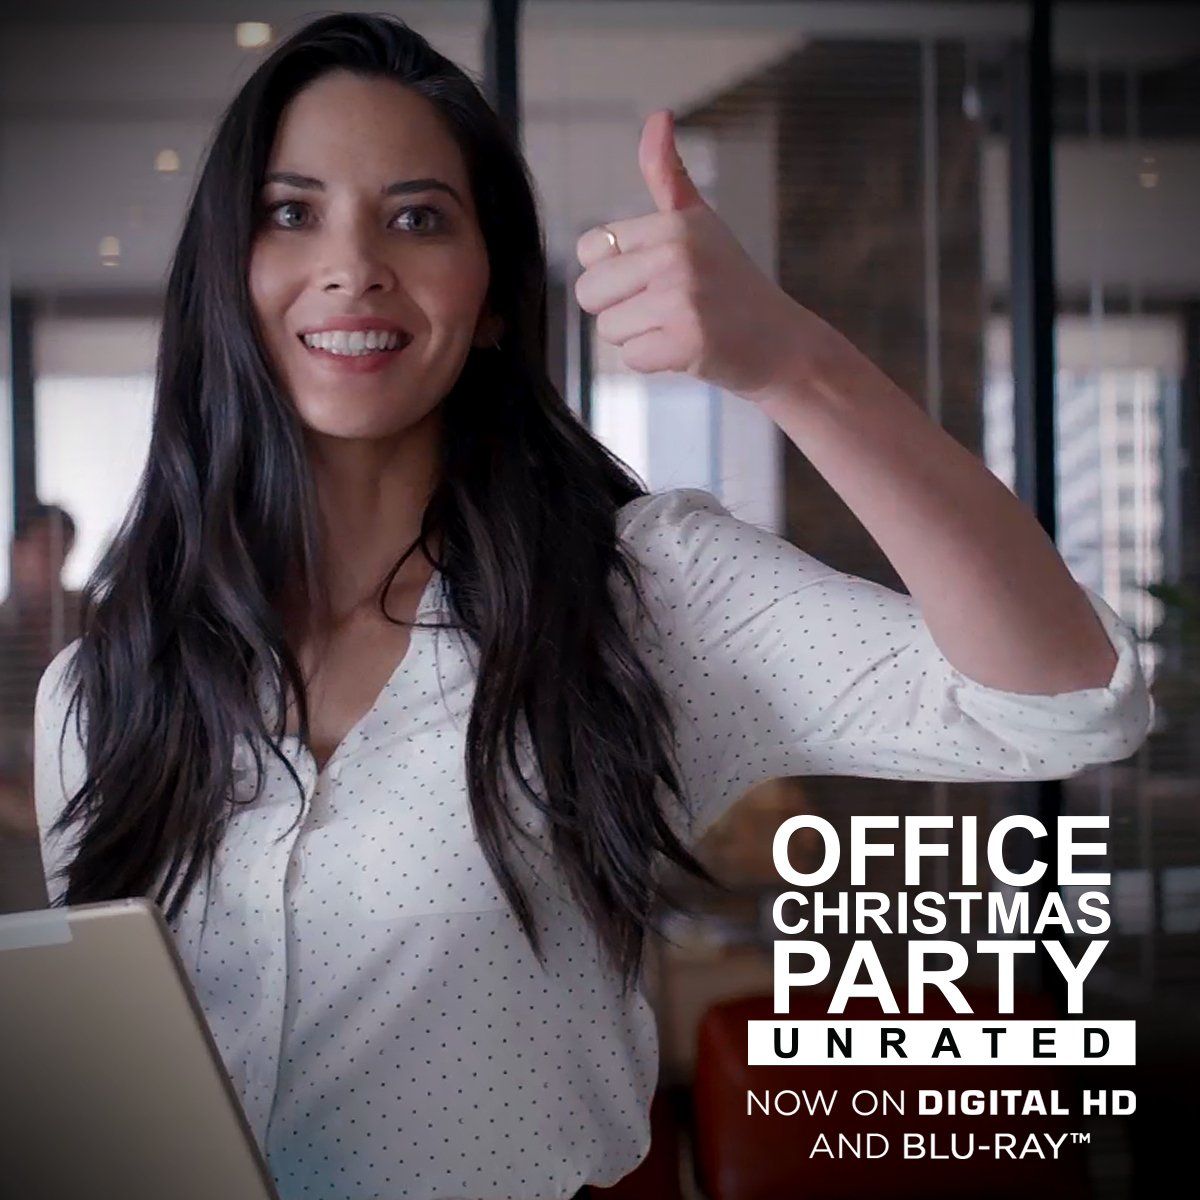 The smile that means you want to kill your boss. Office Christmas Party UNRATED is now on Digital HD and Blu-ray™. https://t.co/cePL5GuibB https://t.co/cJ6glJBw67